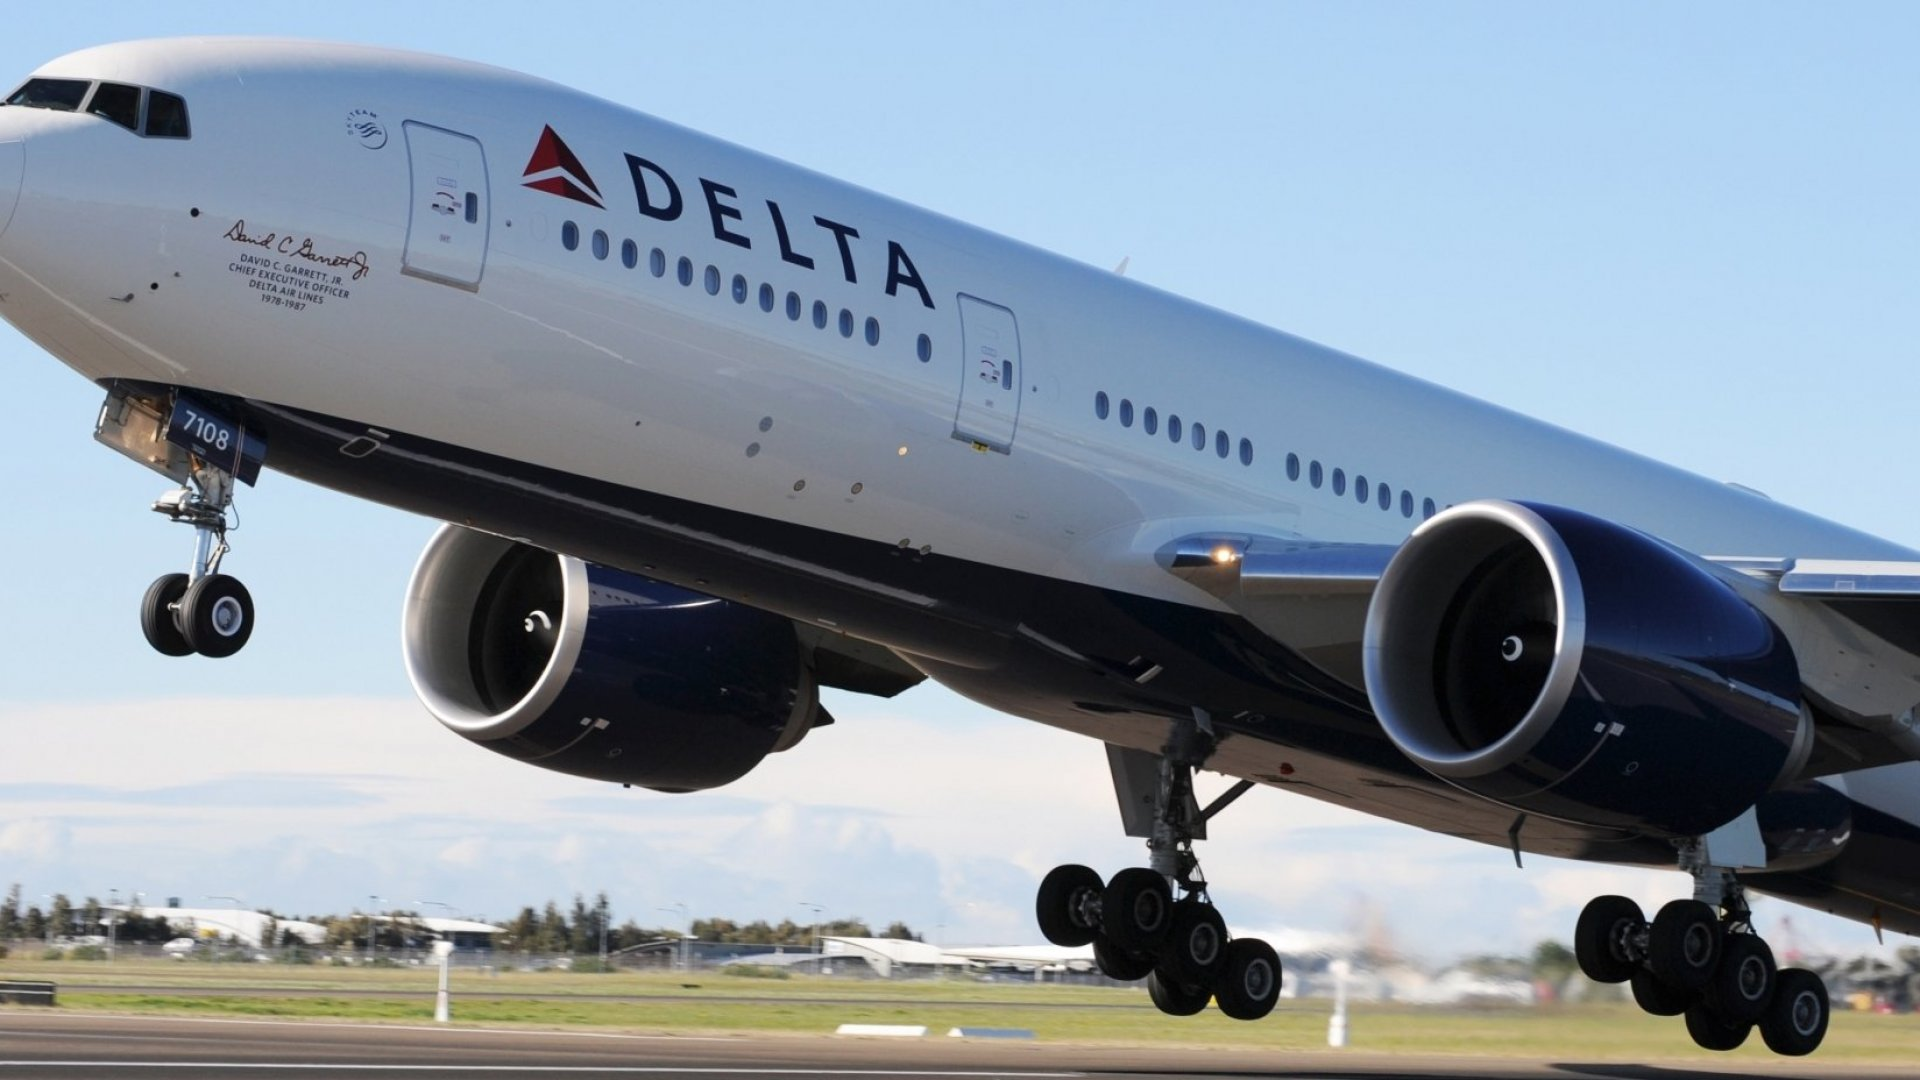 Delta Just Made a Stunning, Passenger-Friendly Announcement That Puts Other Airlines to Shame